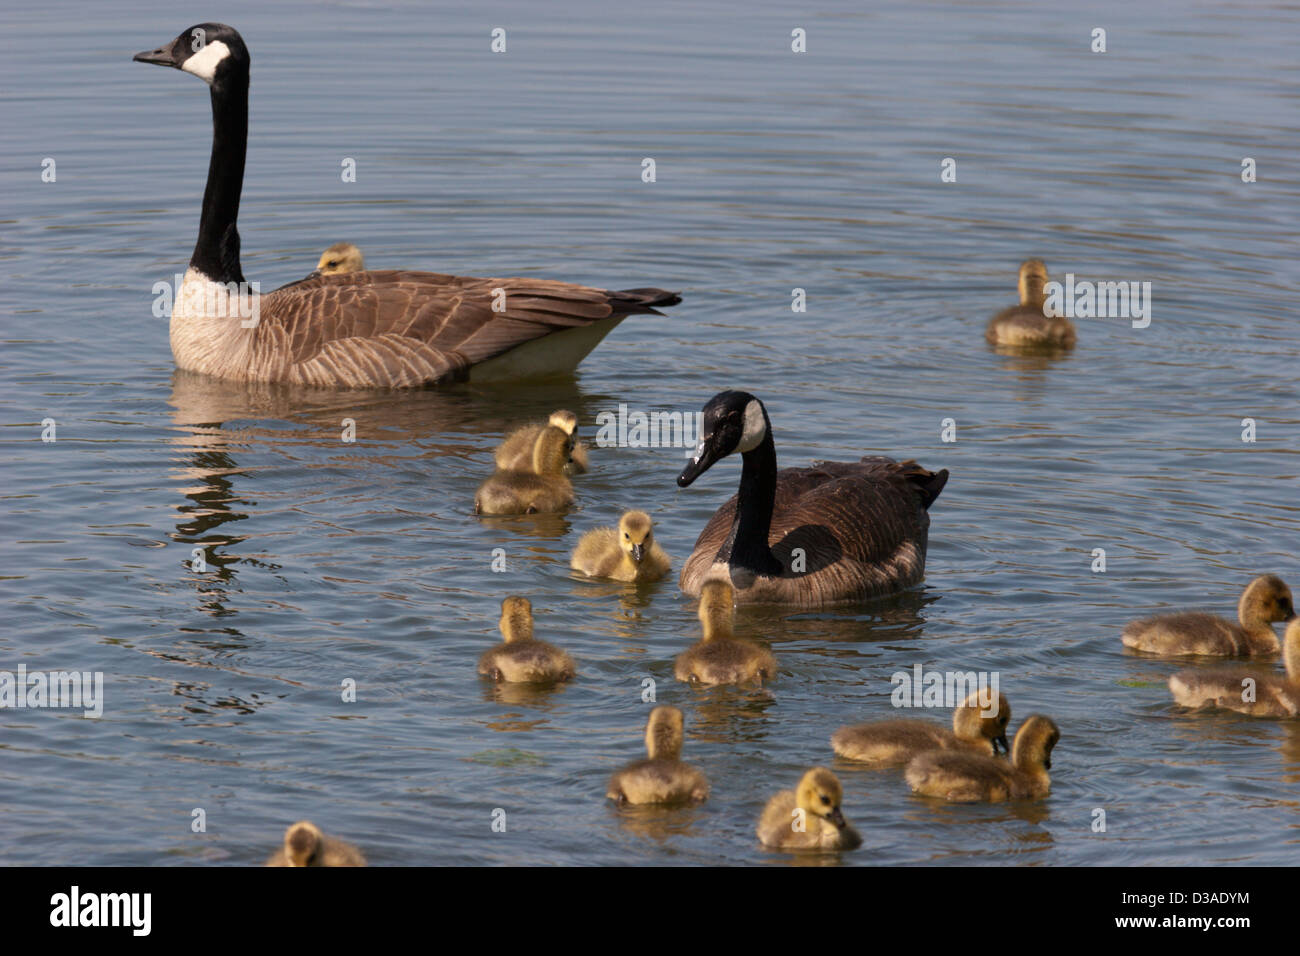 Canada geese goose baby babies chicks birds - Stock Image